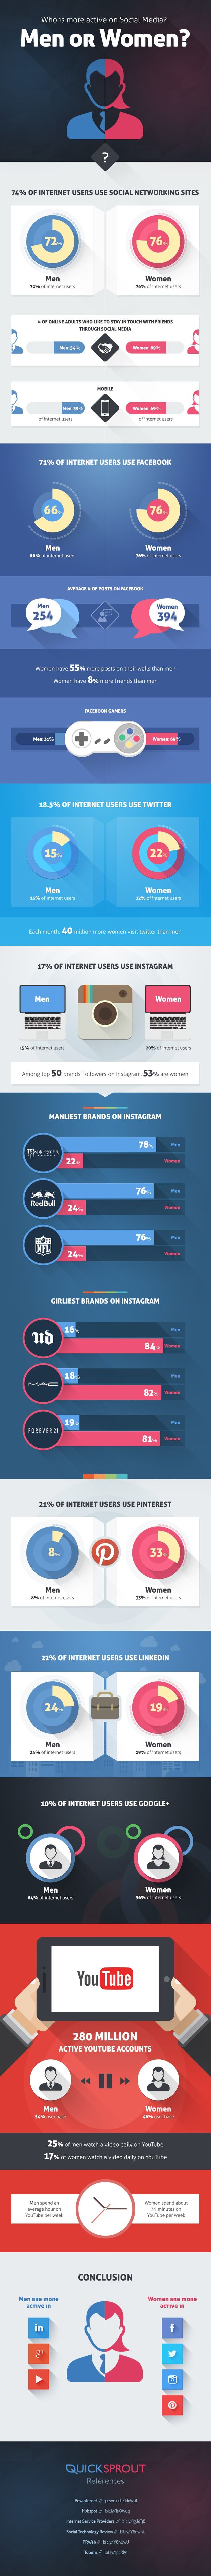 Who_is_more_active_on_SocialMedia